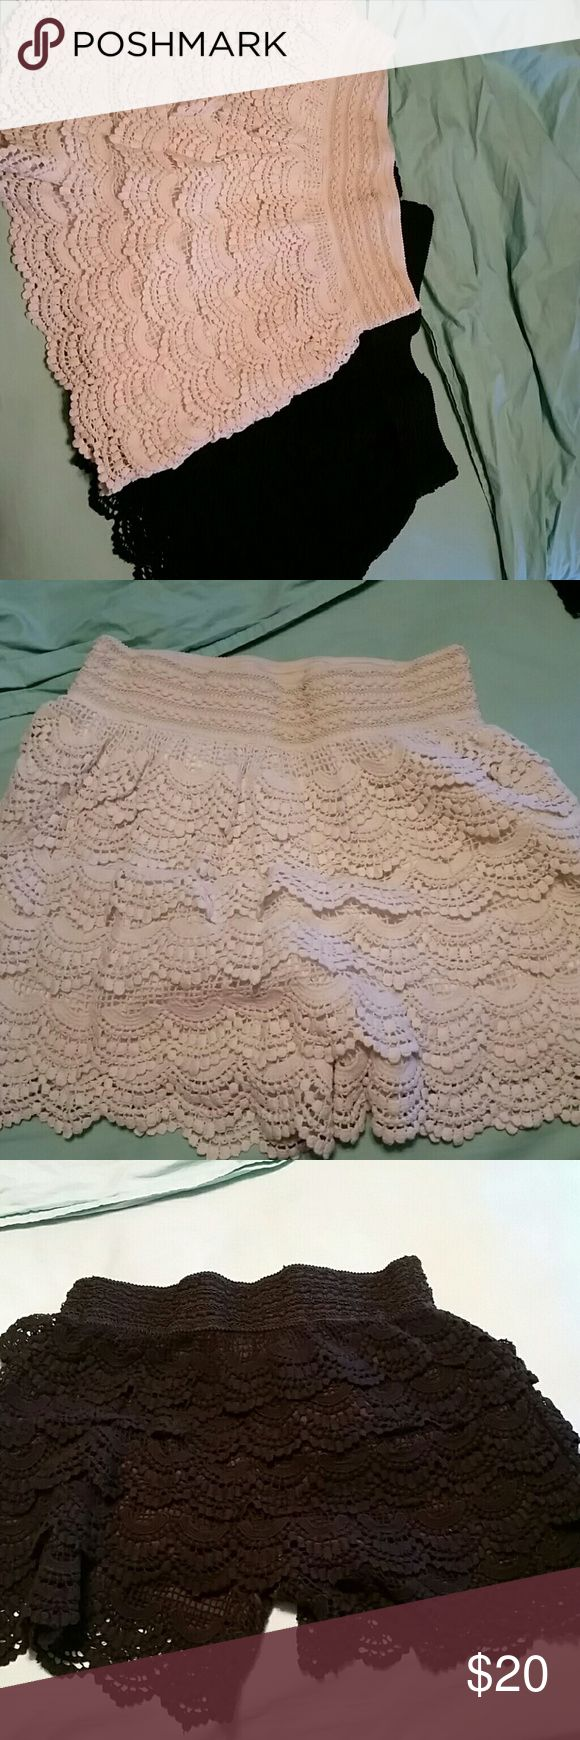 EUC Giddy Up Glamour crochet lace shorts Set of 2 crochet lace shorts. Perfect for summer! Dress them up or dress them down, these make a perfect addition to your summer wardrobe. Worn only once each. Originally $20 a piece. Giddy Up Glamour Shorts